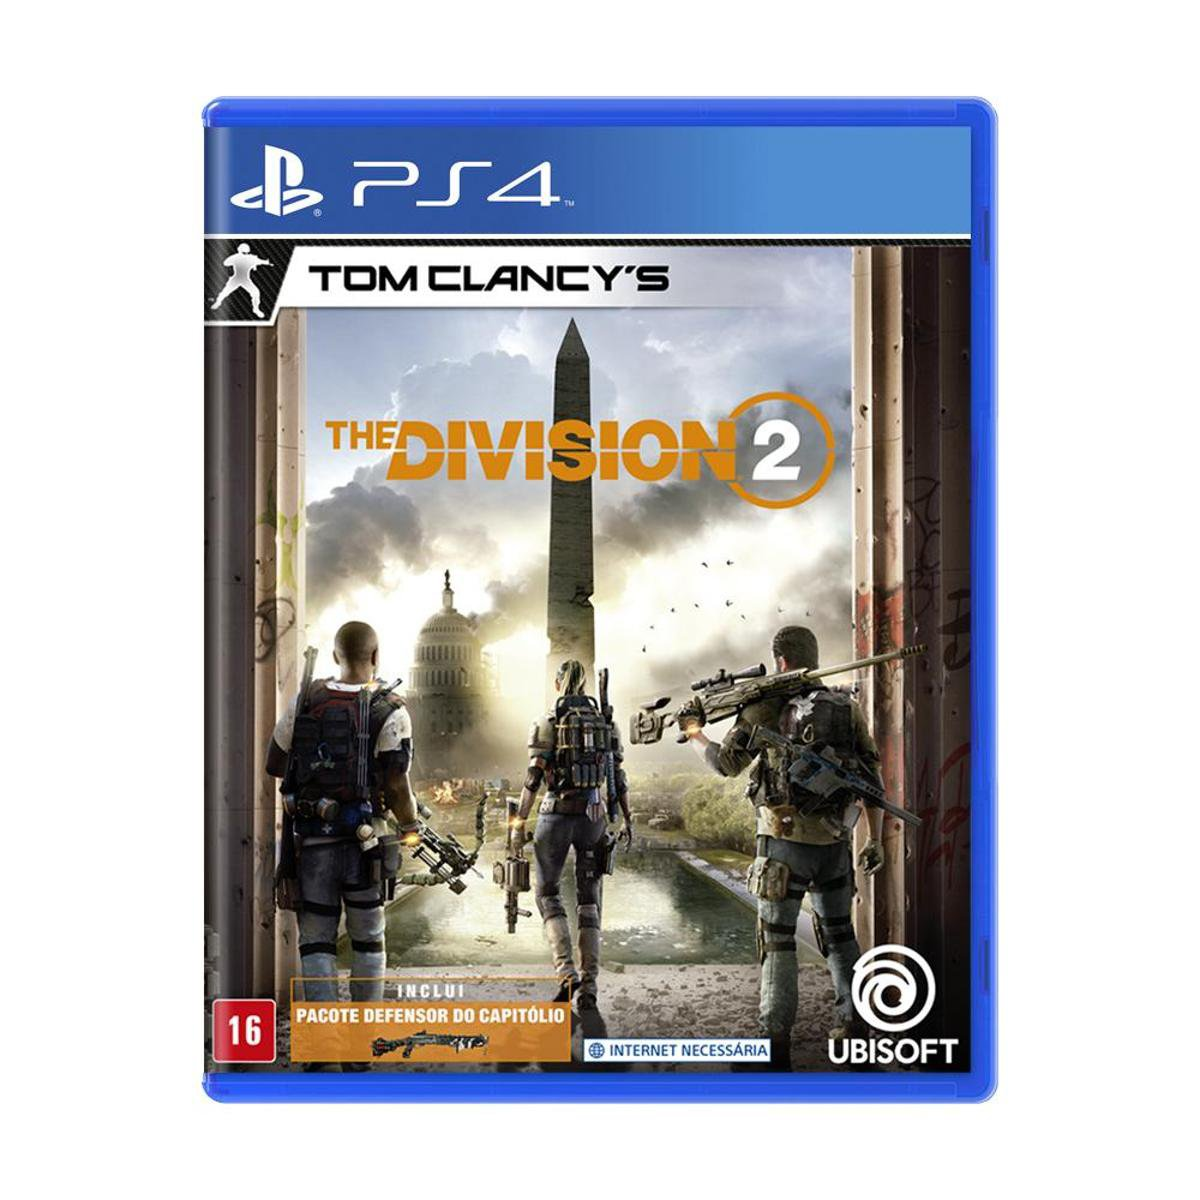 Jogo Tom Clancy's The Division 2 - PS4 - Incolor